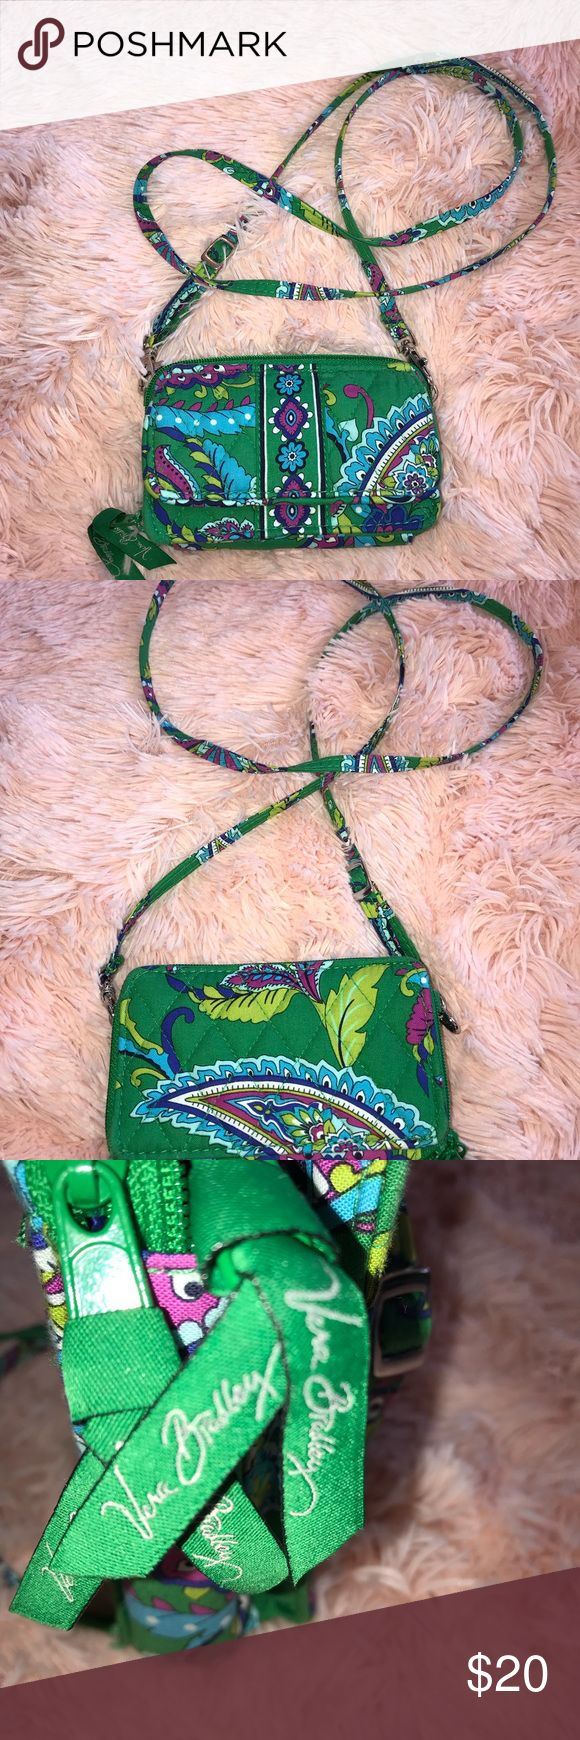 ❌CHECK OUT MY PAGE ON SALE❌cross body purse/wallet This is a small Crossbody vera Bradley purse/wallet. Has tons of storage for cash and etc. Vera Bradley Accessories Bags